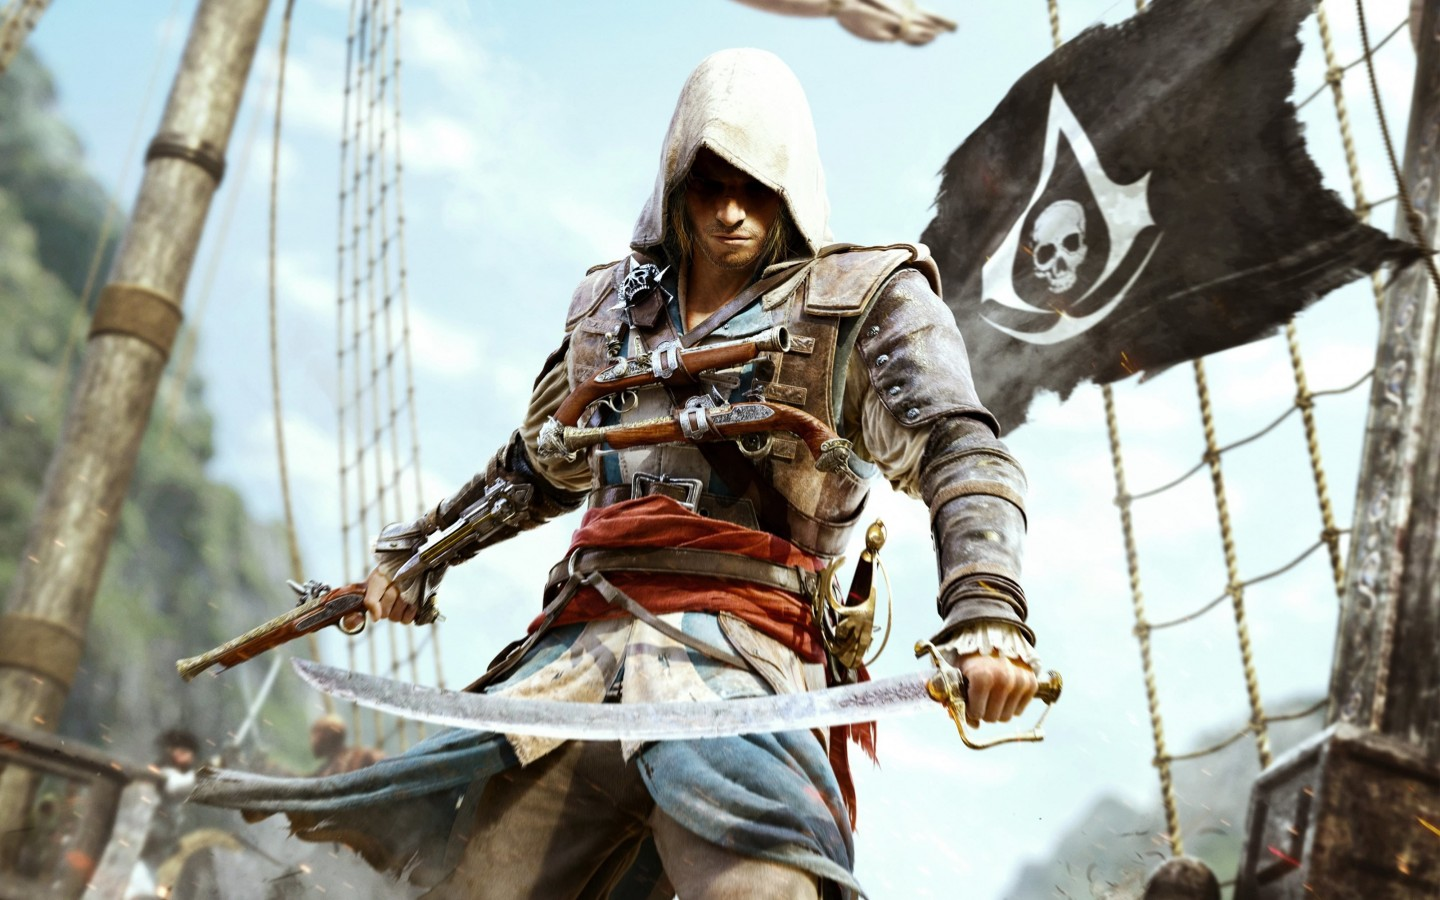 Assassin's Creed IV: Black Flag Wallpaper for Desktop 1440x900